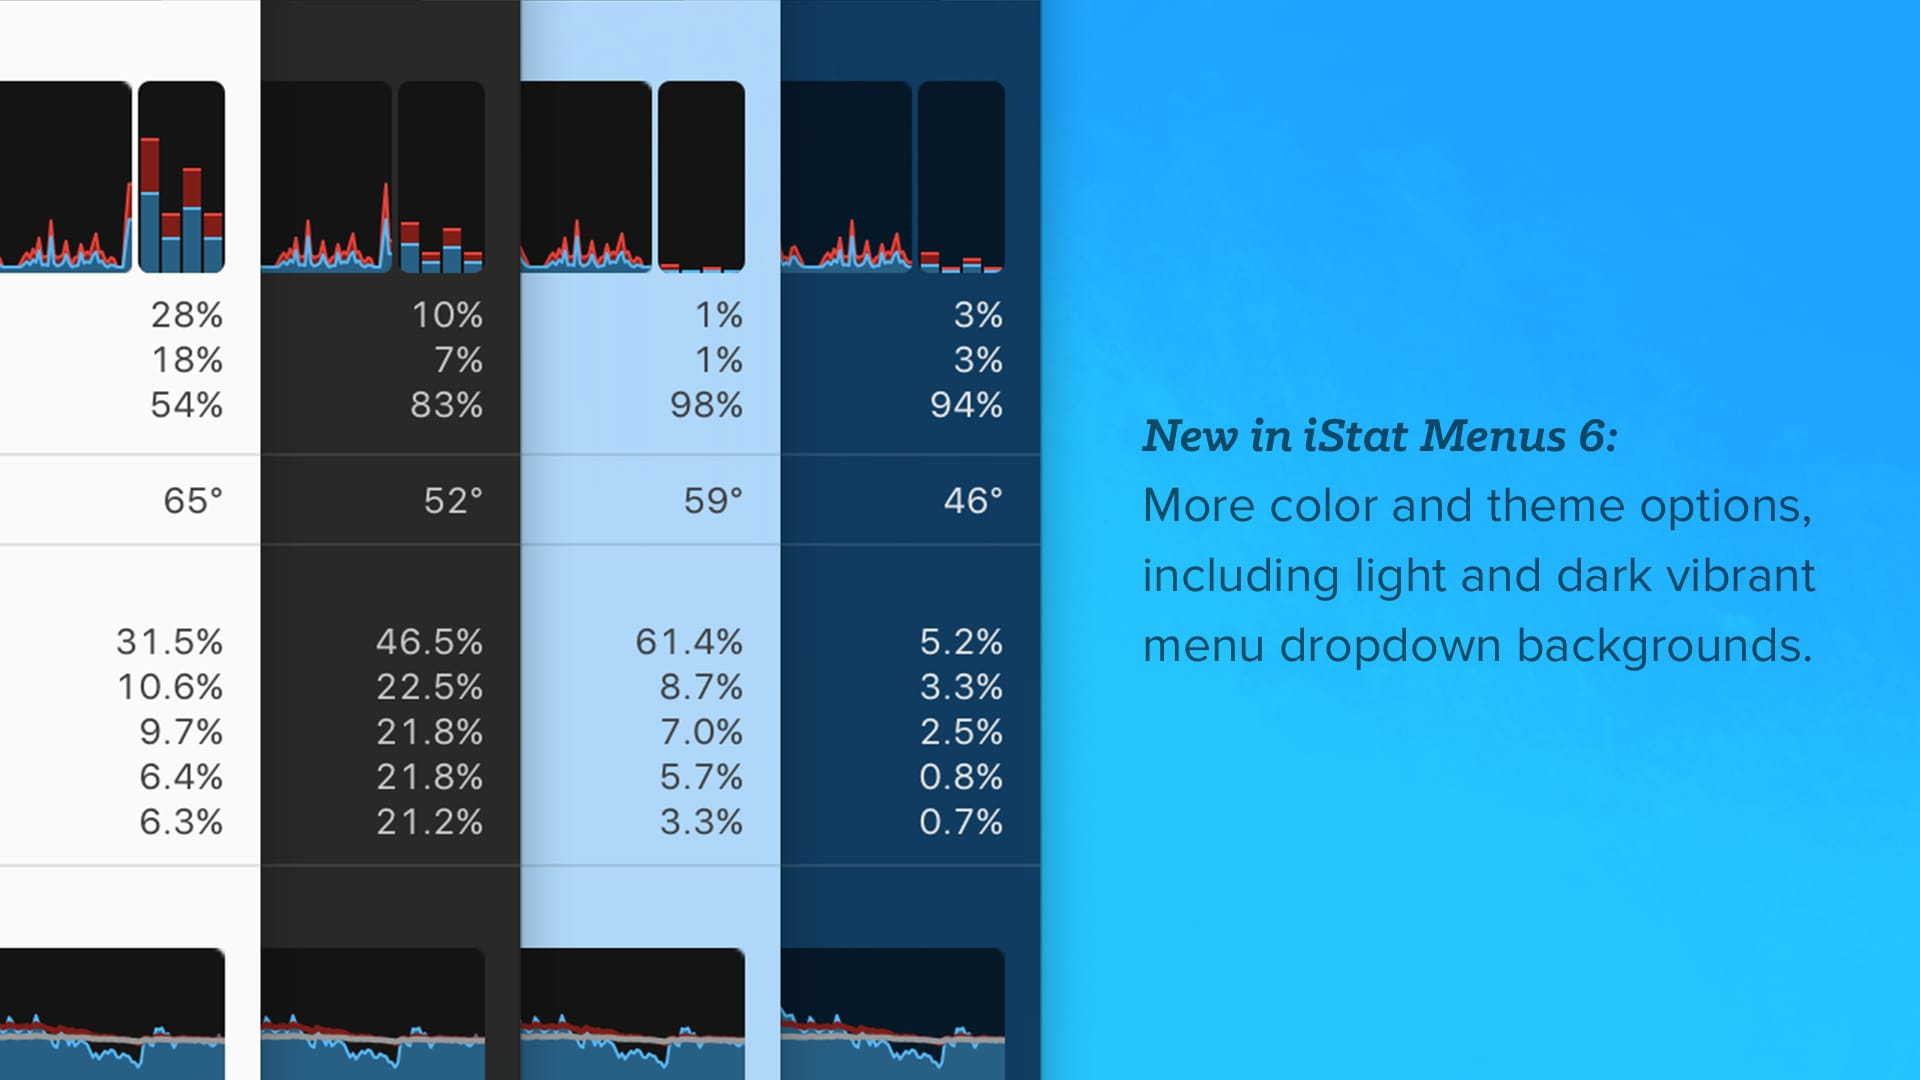 Theme options in iStat Menus 6.